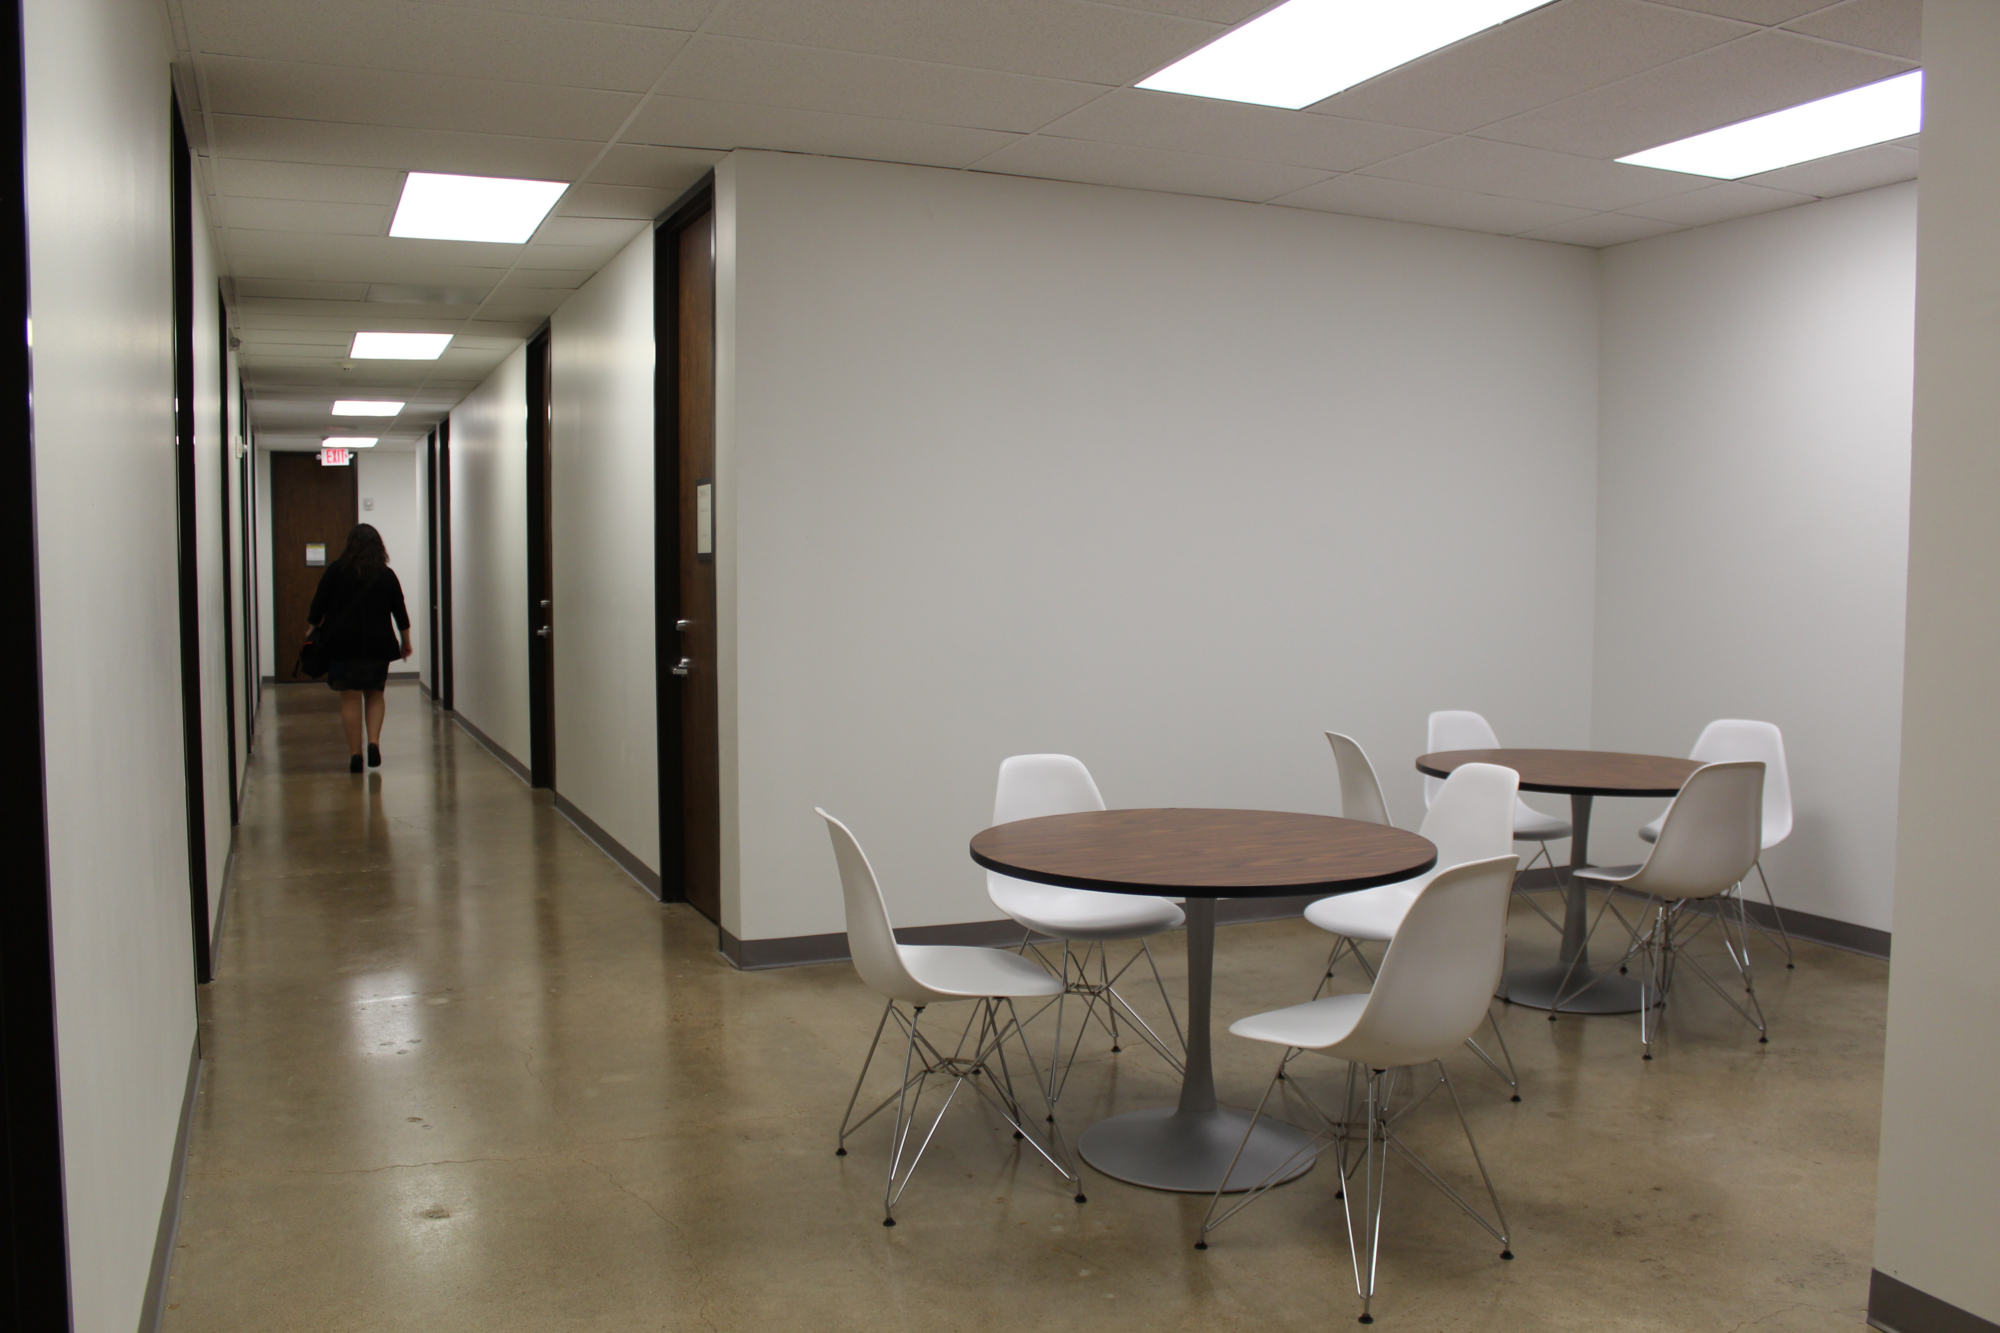 Office Space in Bonhomme Road Suite 290.